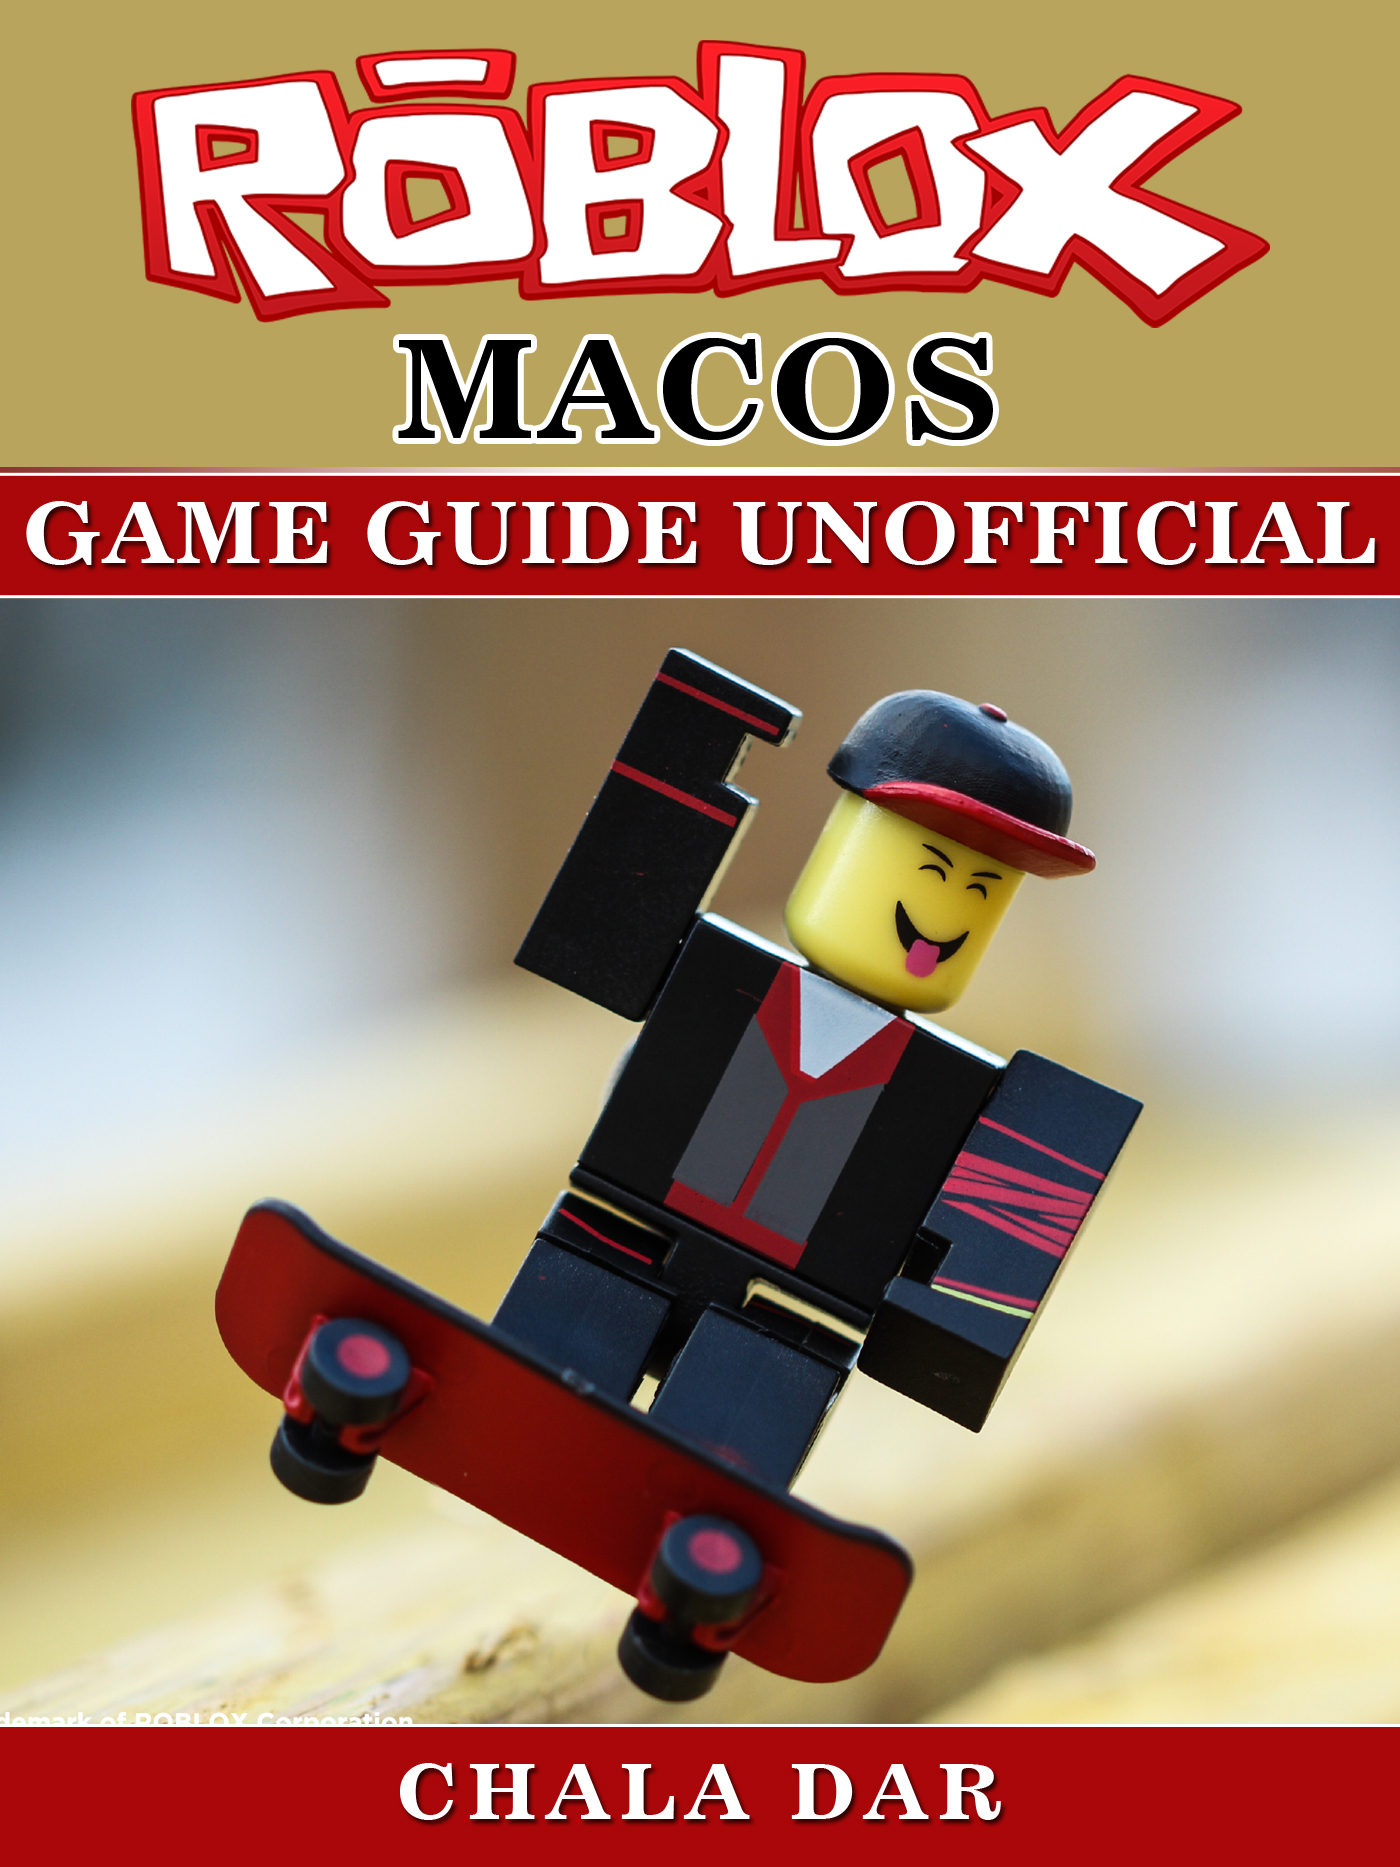 Roblox Mac Os Game Guide Unofficial By Chala Dar